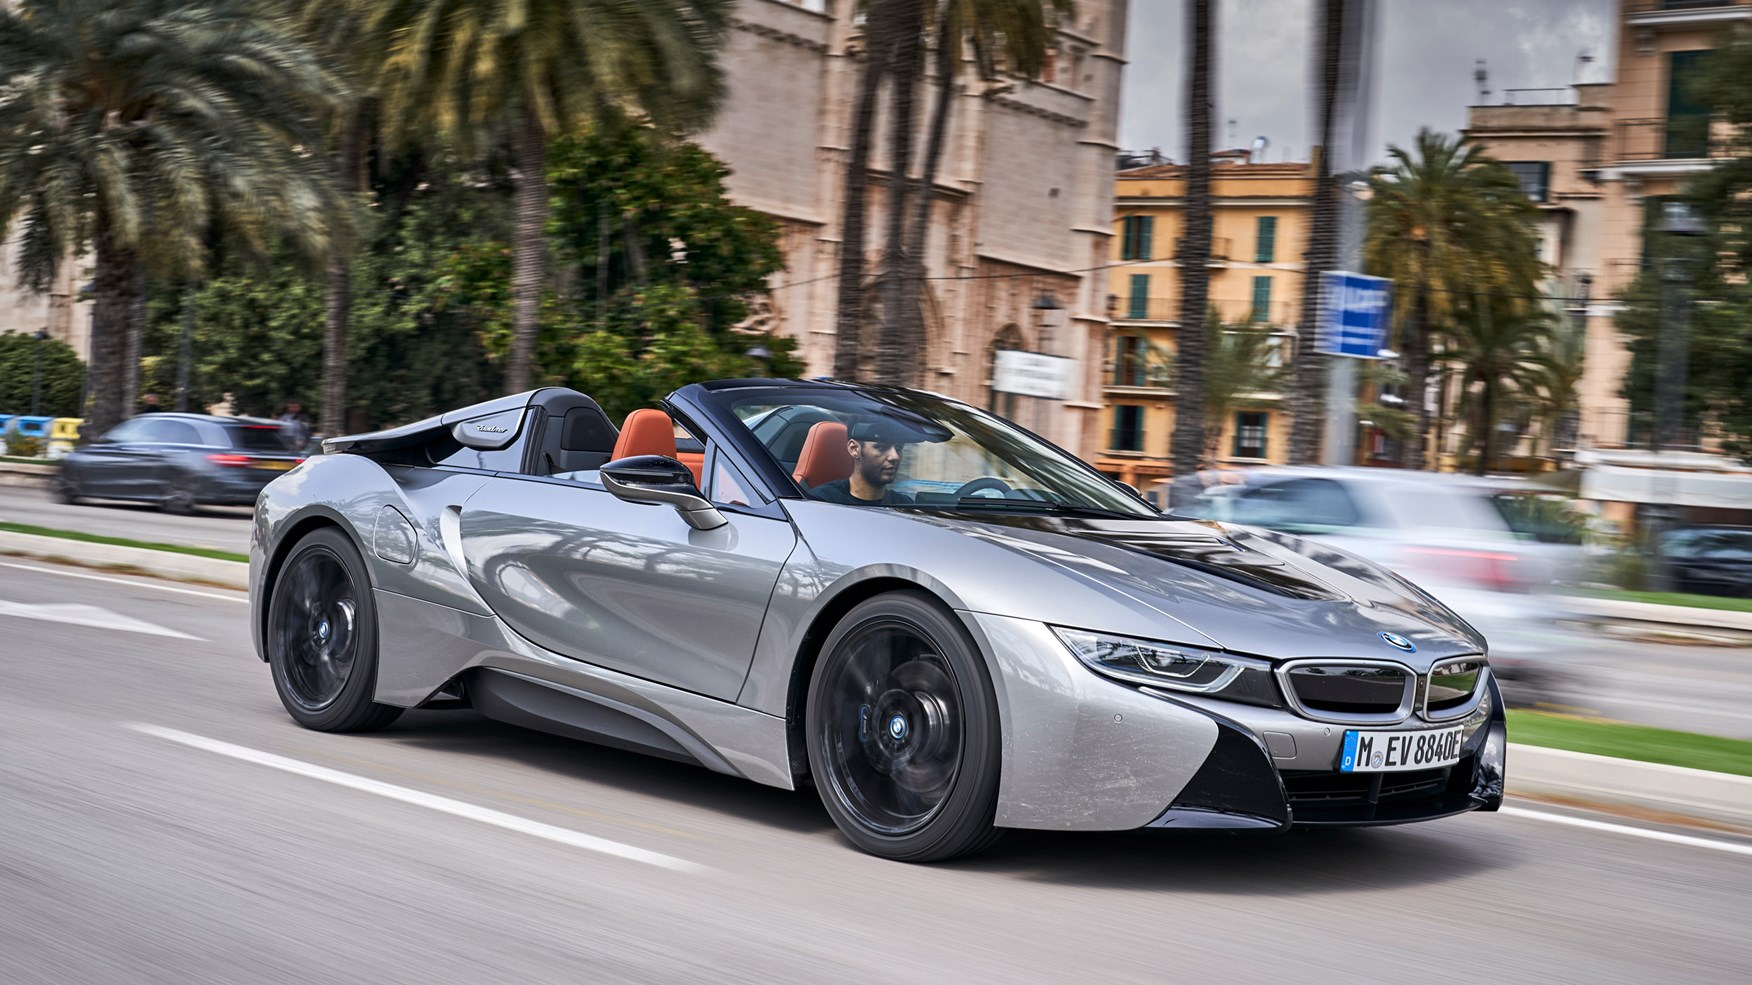 Bmw I8 Lease Deals >> BMW i8 Roadster review: the hybrid supercar, refined | CAR Magazine